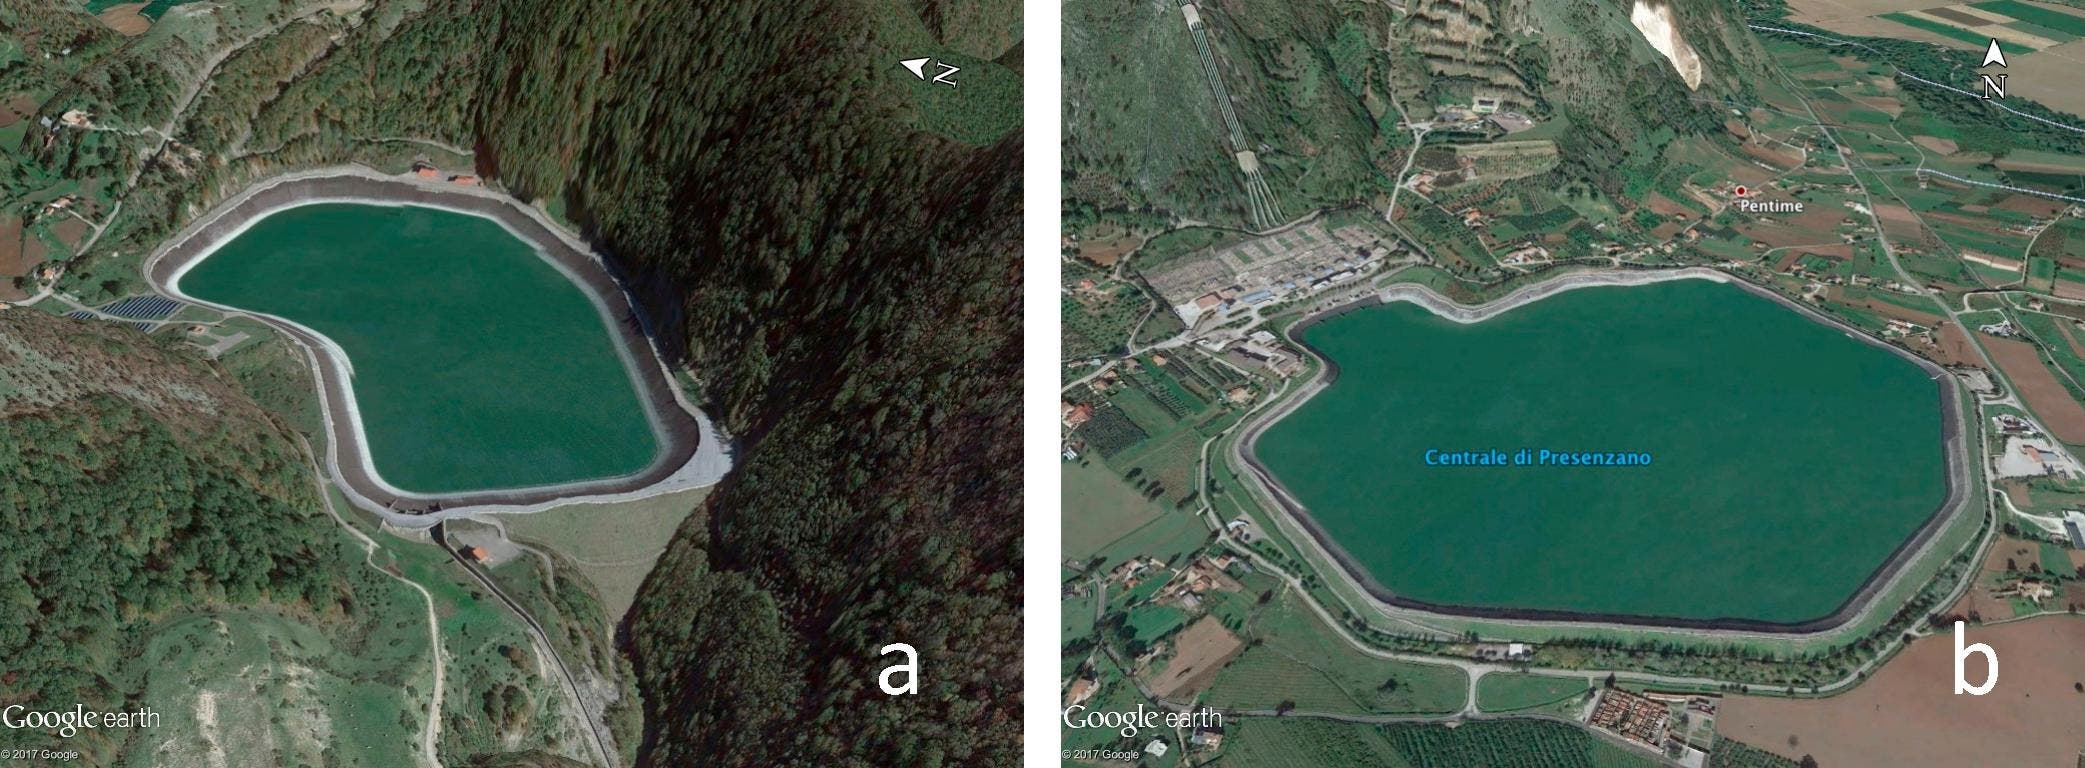 Upper and lower reservoirs of Italian closed loop pumped hydro system